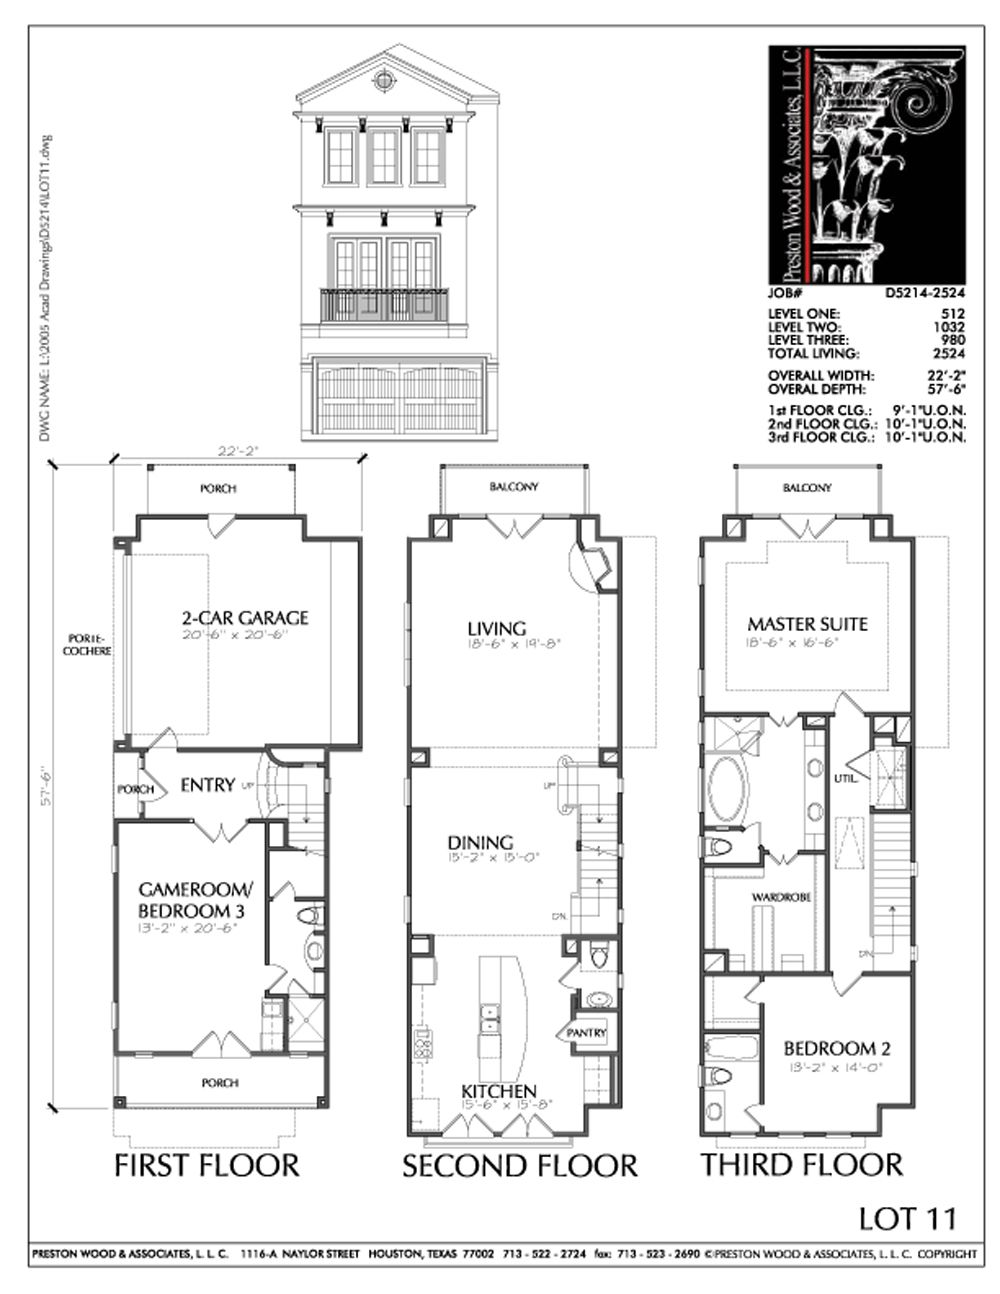 Townhouse plan d5214 2524 if the garage was sunken to basement level